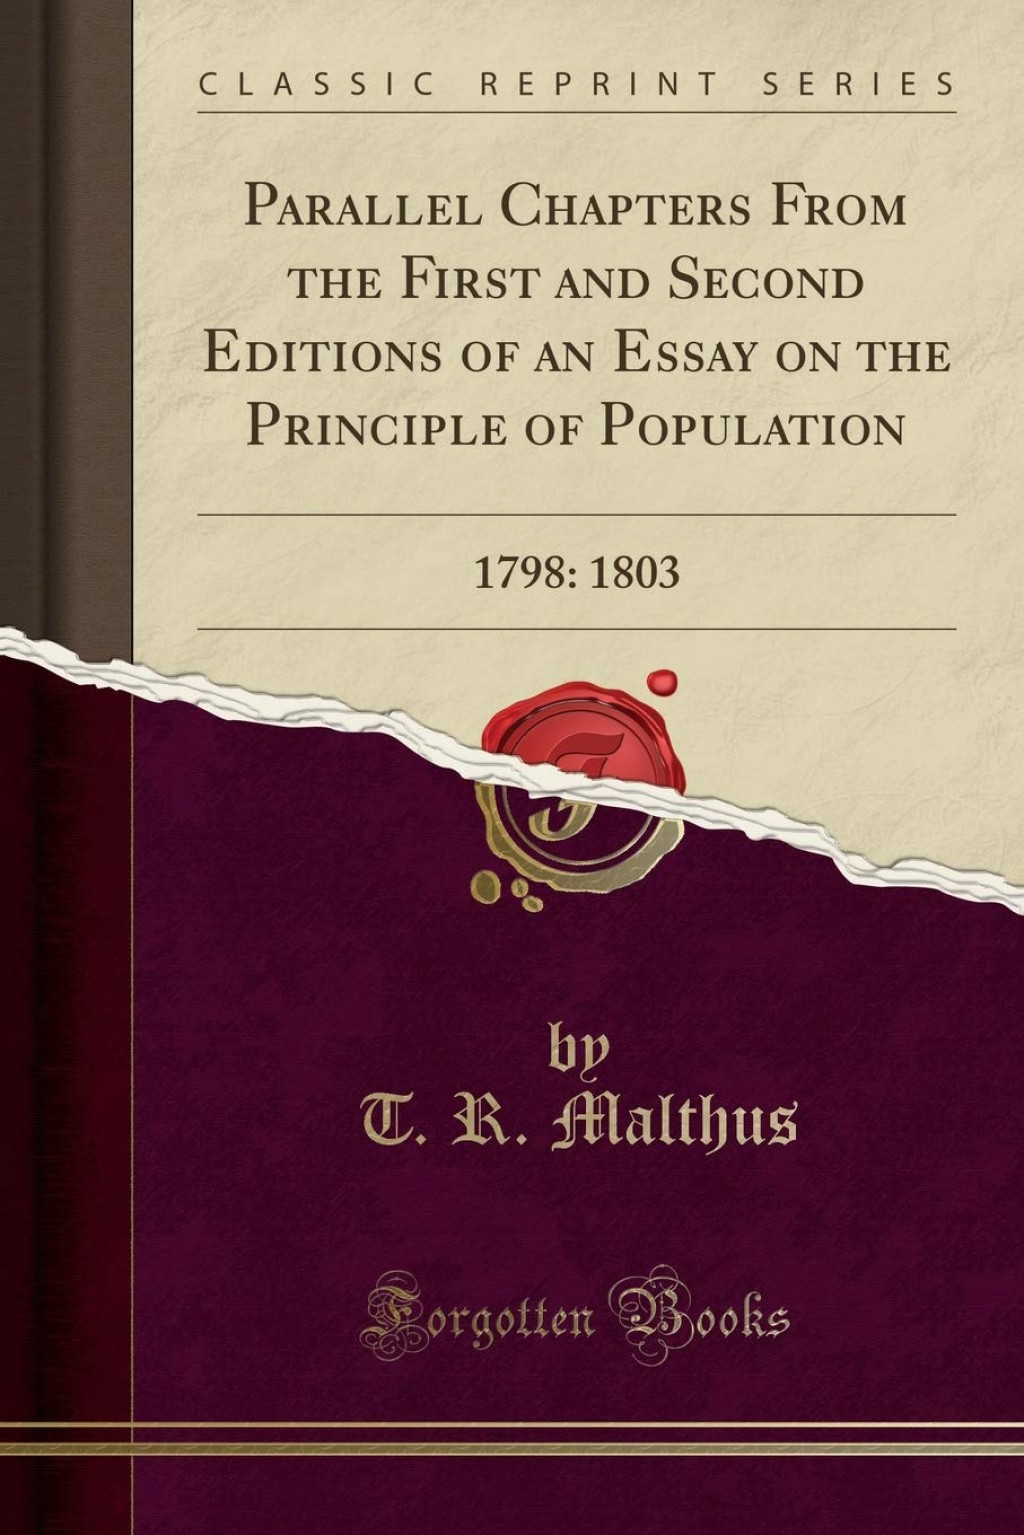 017 61xy24cllwl Essay On The Principle Of Population Singular Thomas Malthus Sparknotes Advocated Ap Euro Large